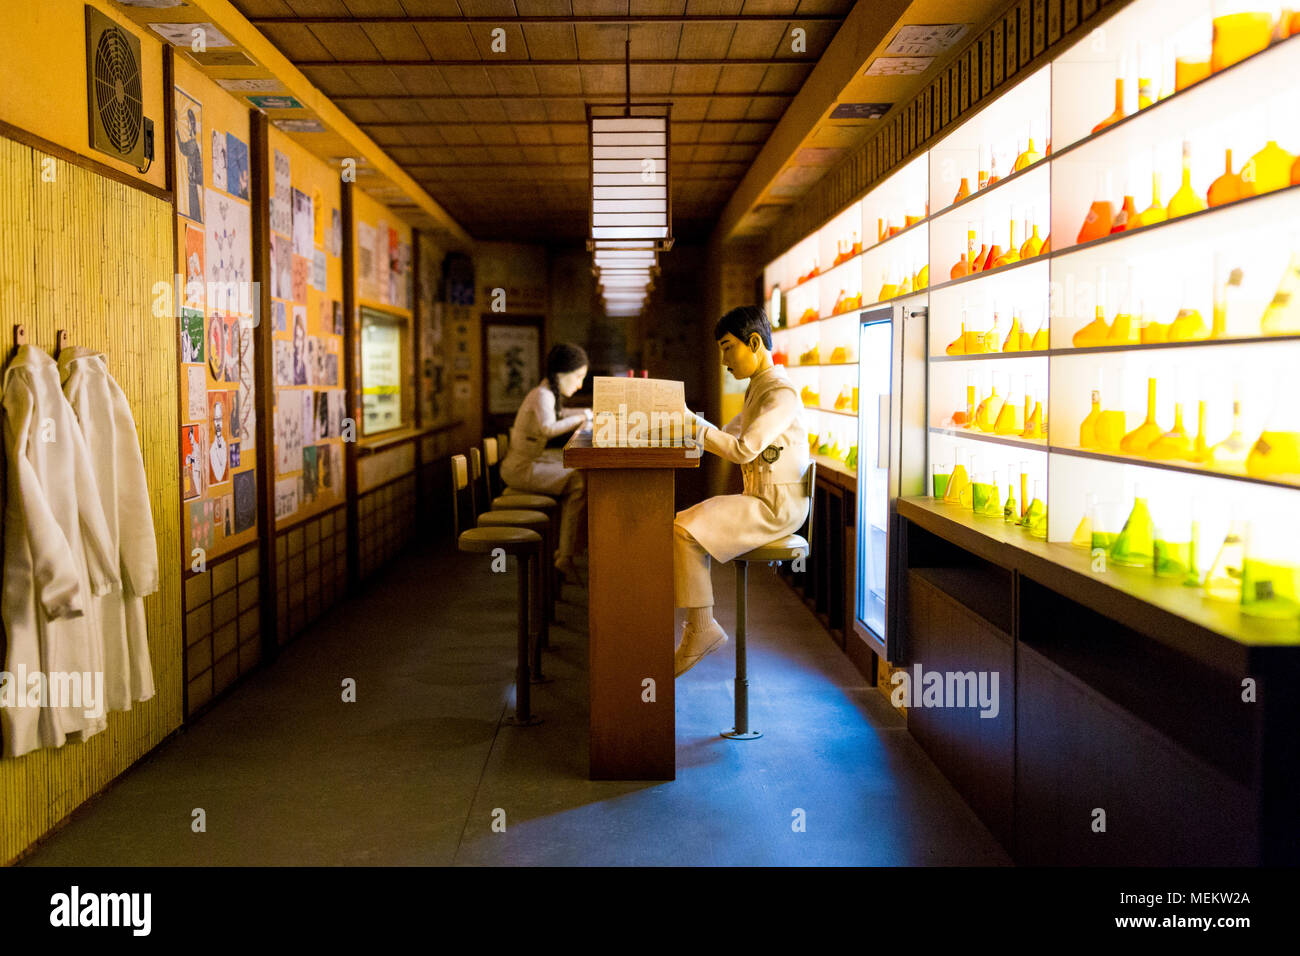 31st March 2018 London, UK - Exhibition of sets from 'Isle of Dogs' a film by Wes Anderson - Stock Image